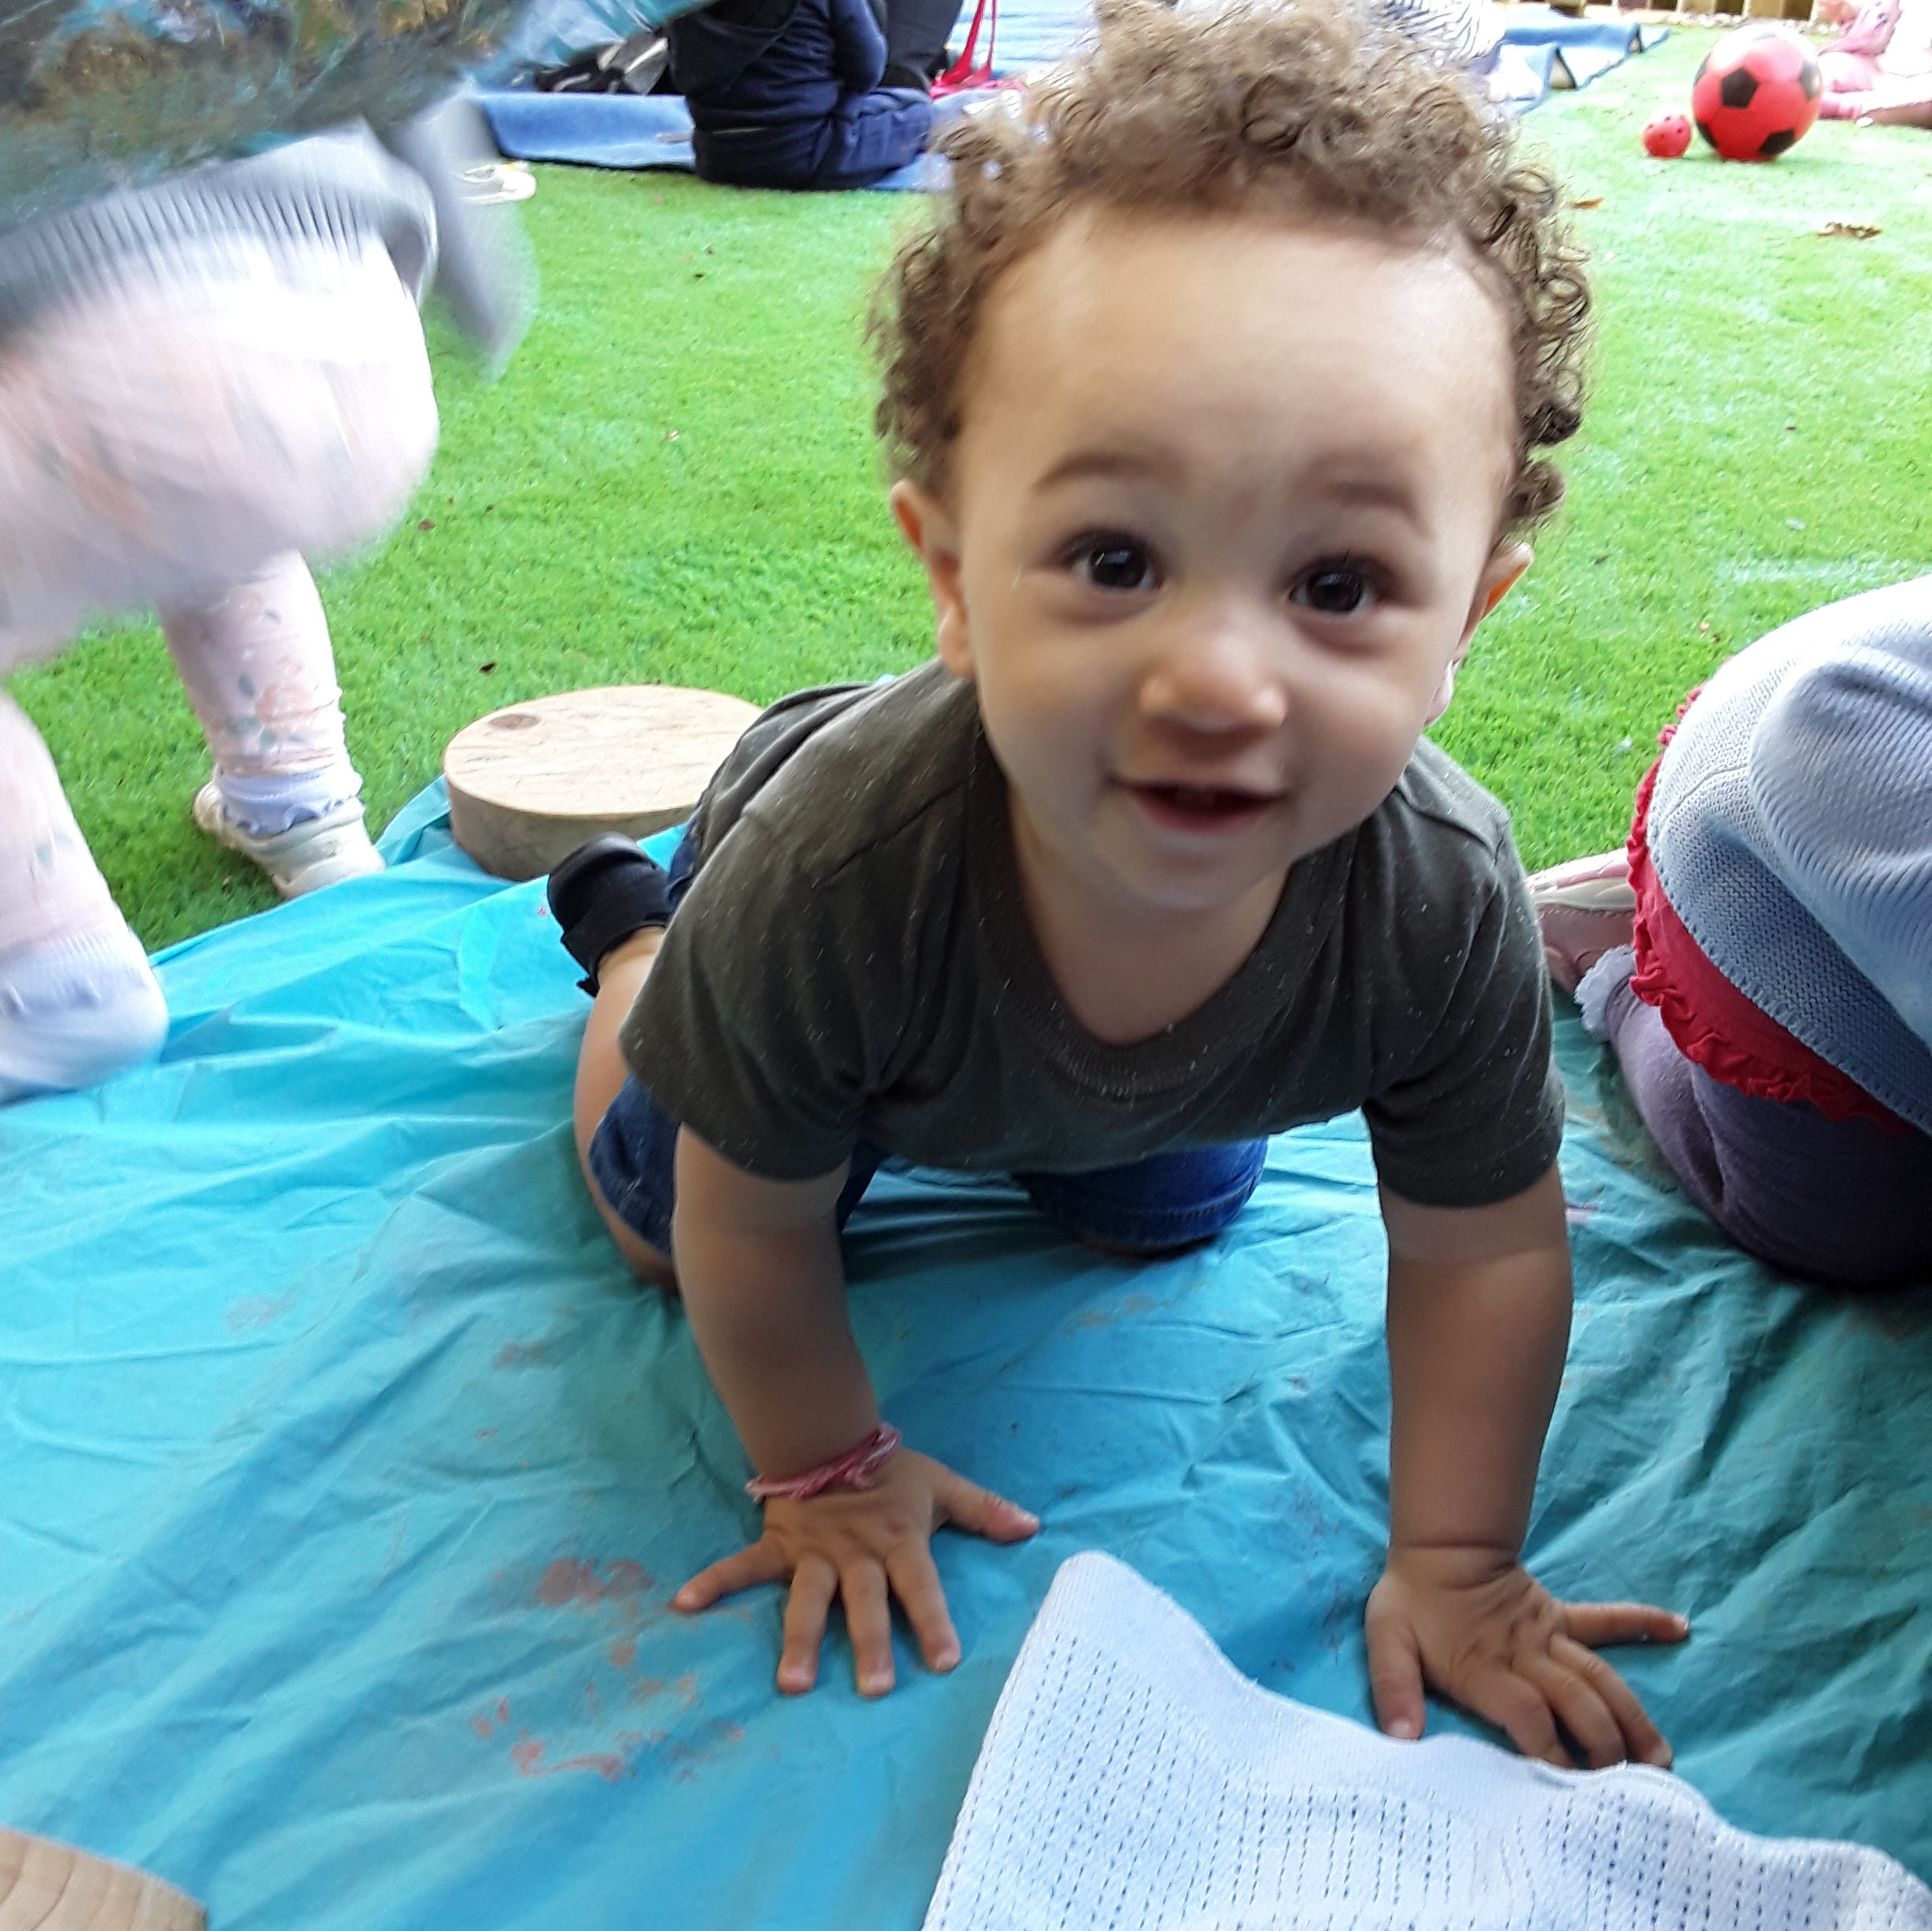 The Kings Norton babies enjoyed den building in the baby area of the garden